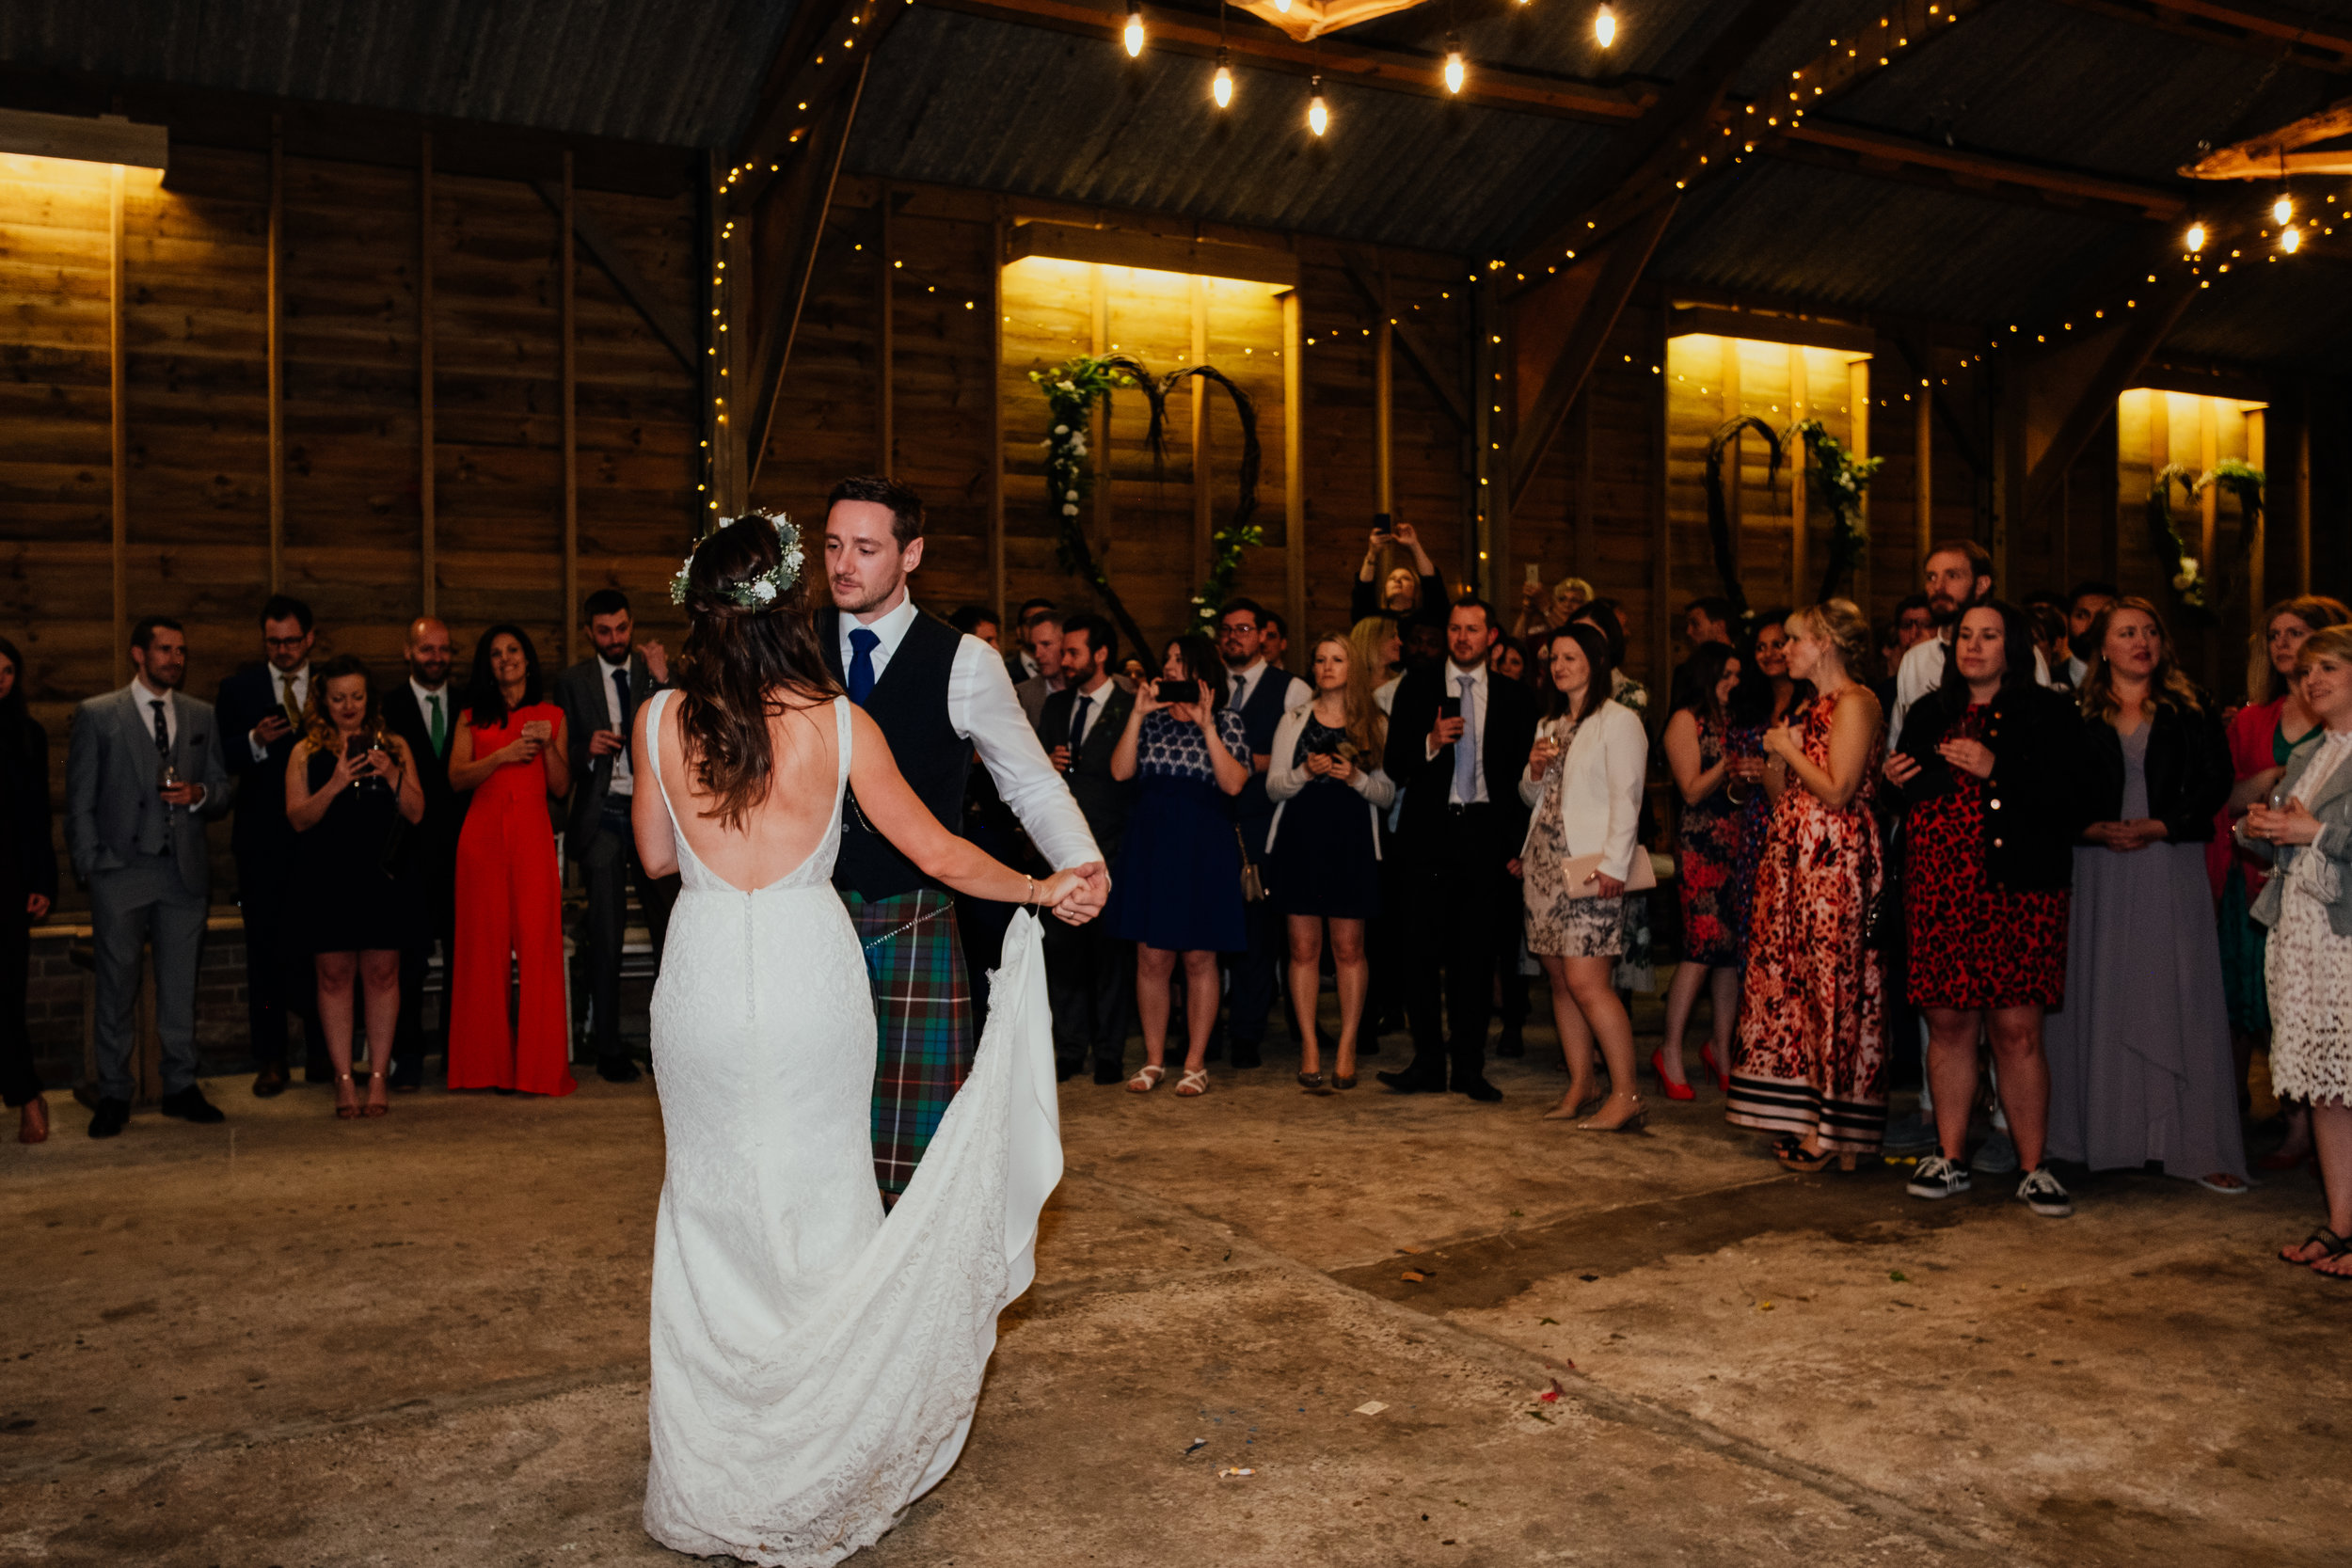 Captains Wood Barn wedding photography first dance